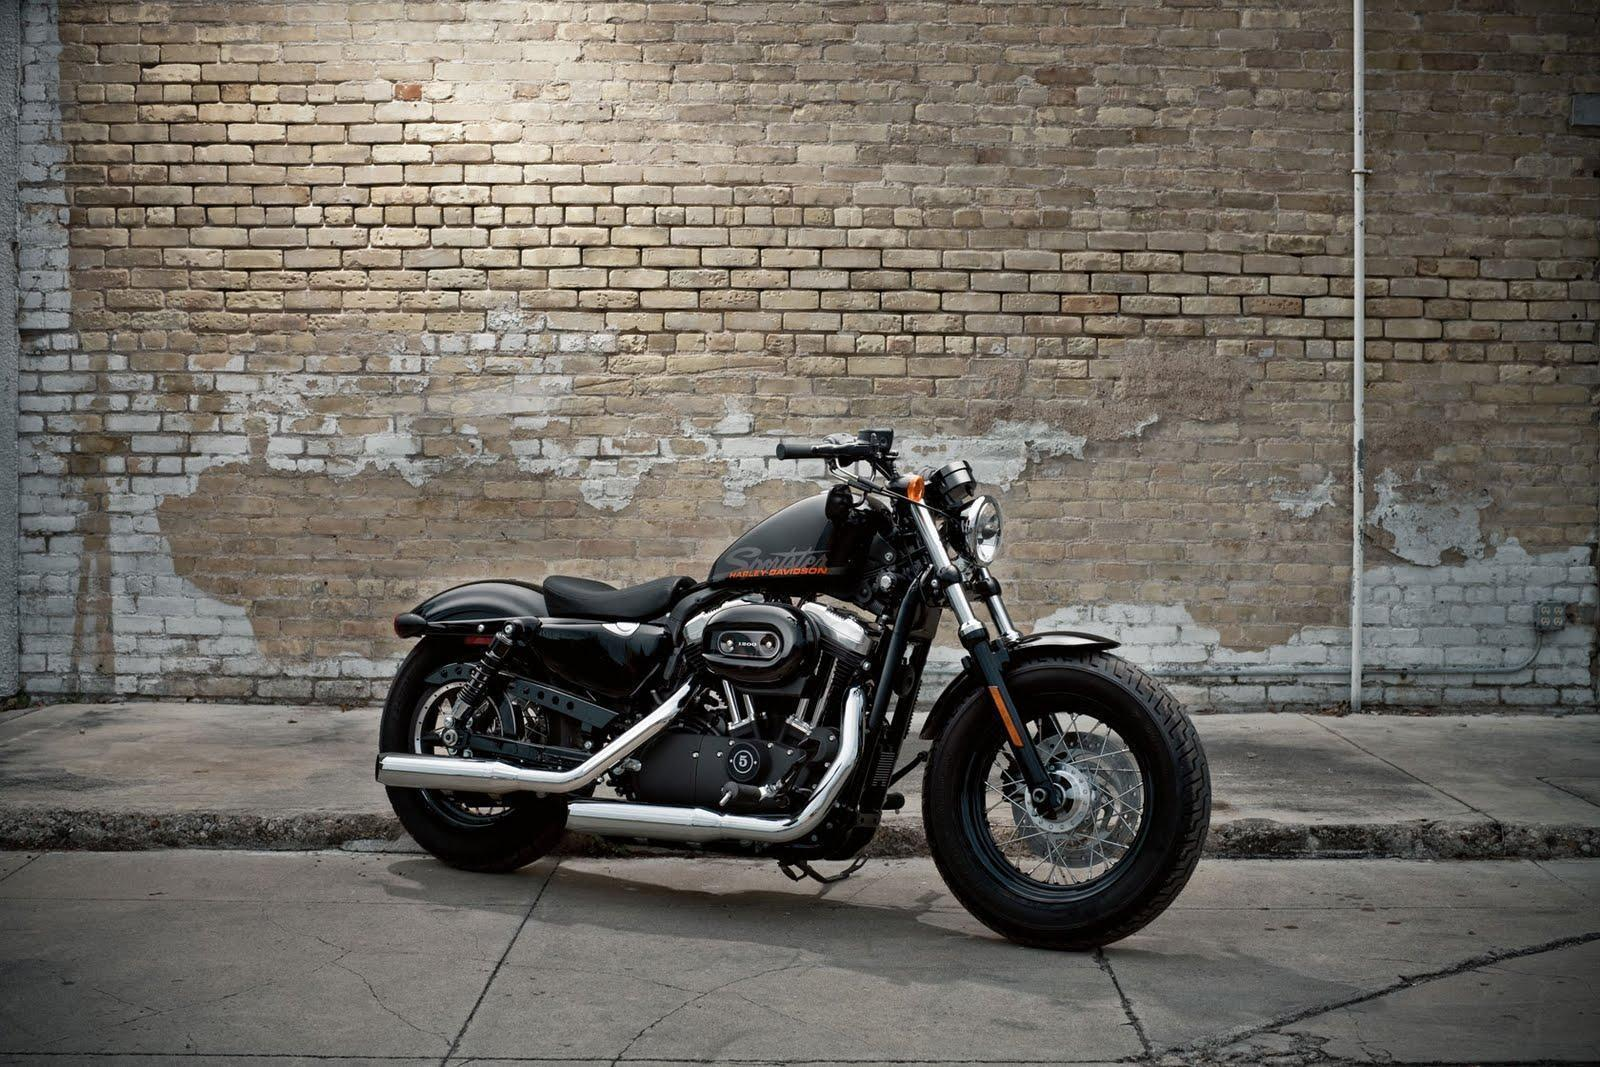 Harley Davidson Sportster Wallpapers 1600x1067